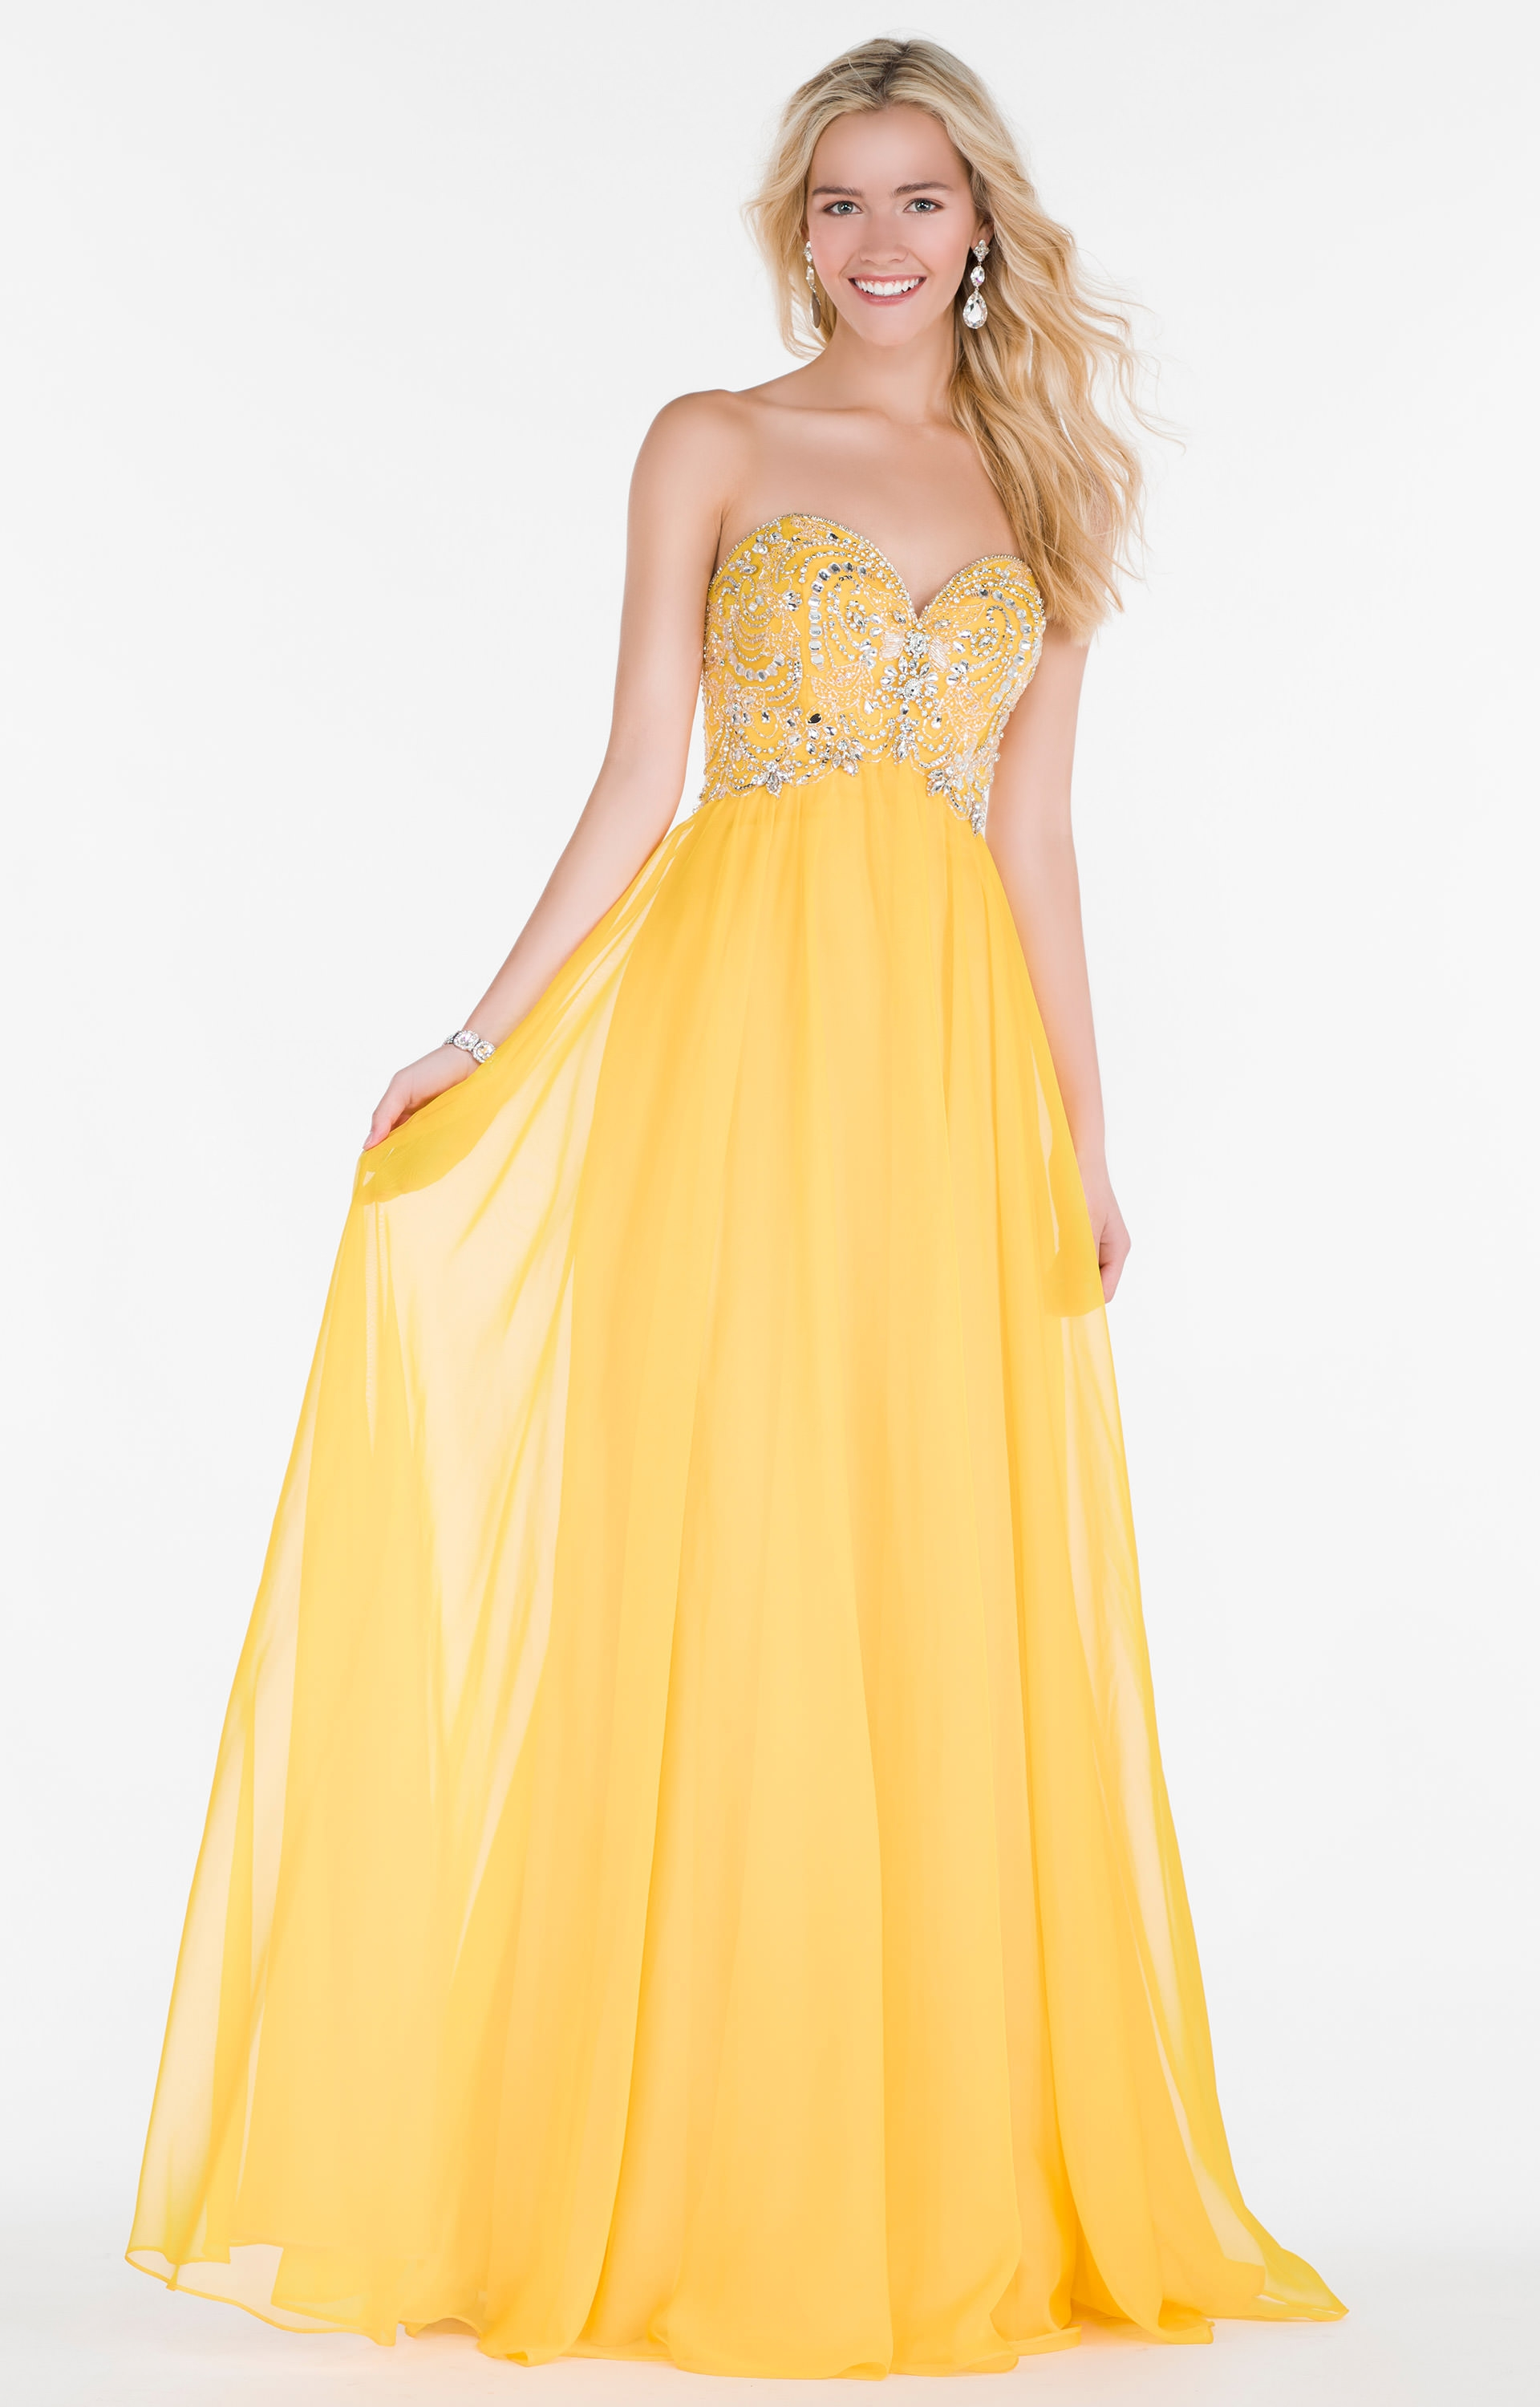 Alyce Paris 6682 - Strapless Sweetheart Chiffon with